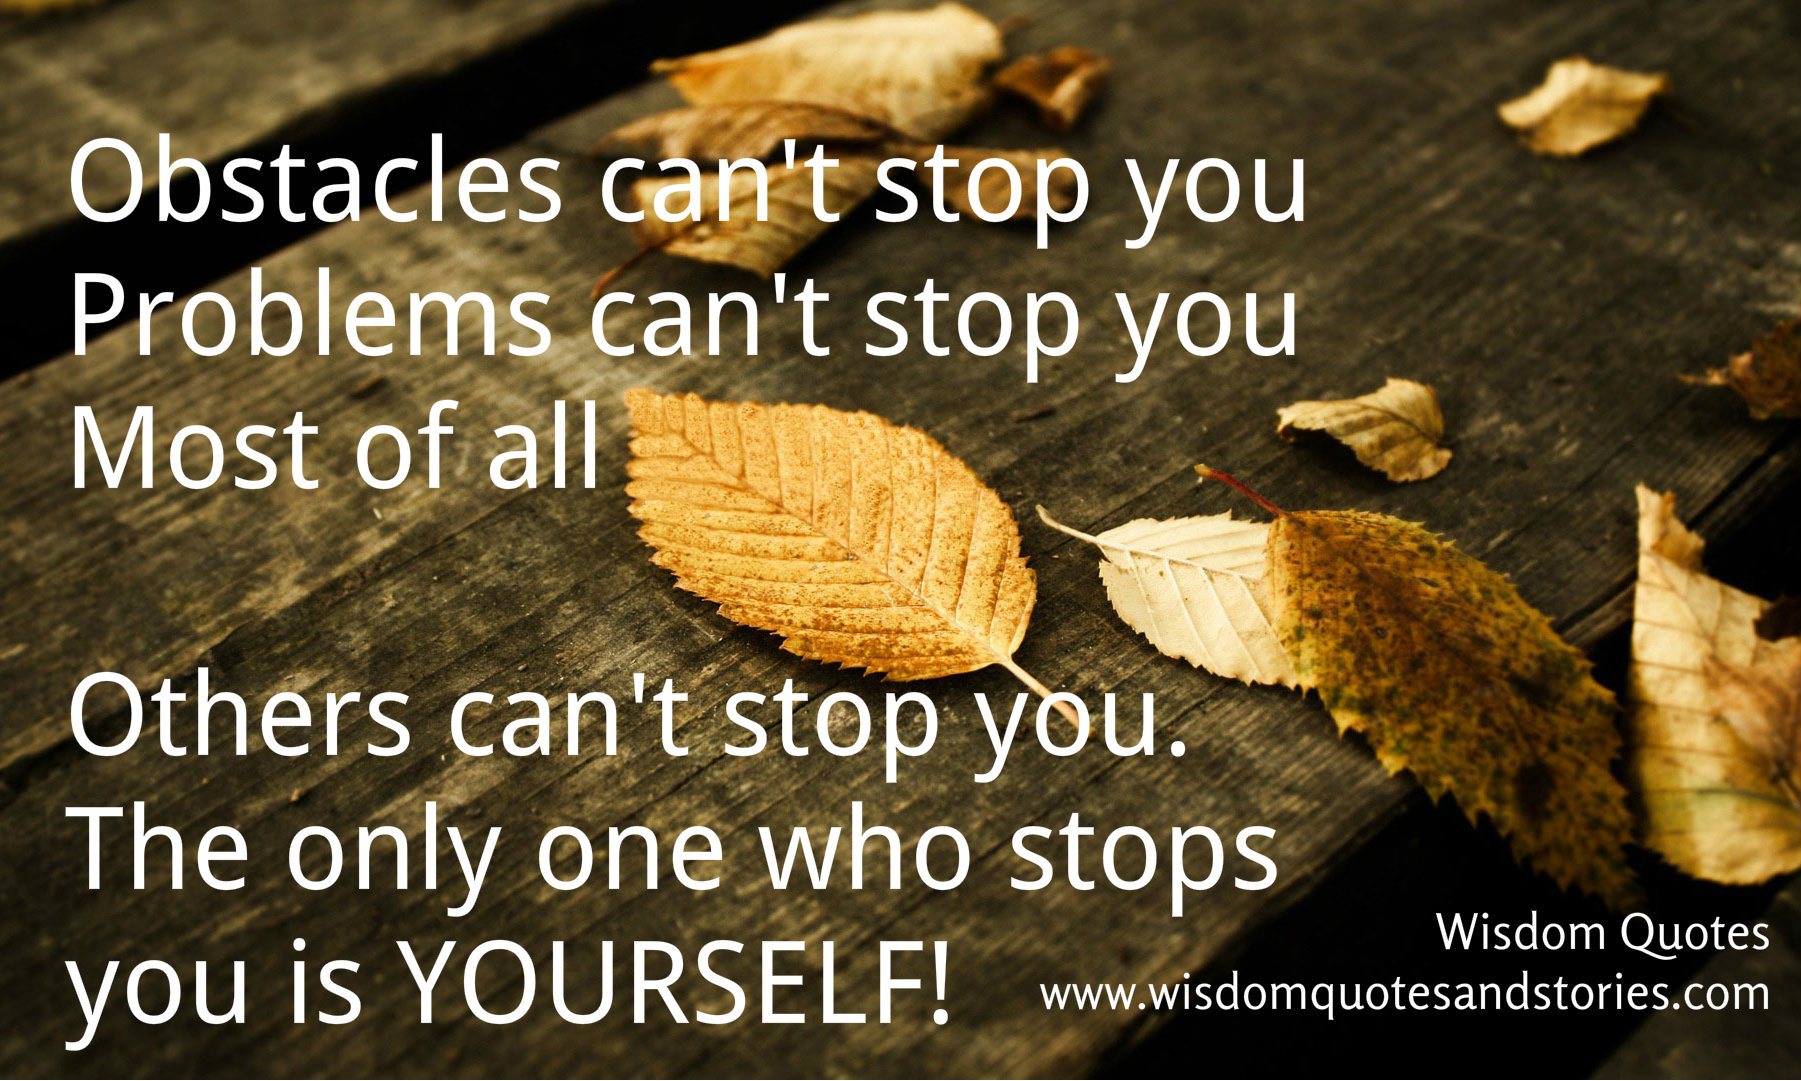 No obstacles or problems can stop you except yourself